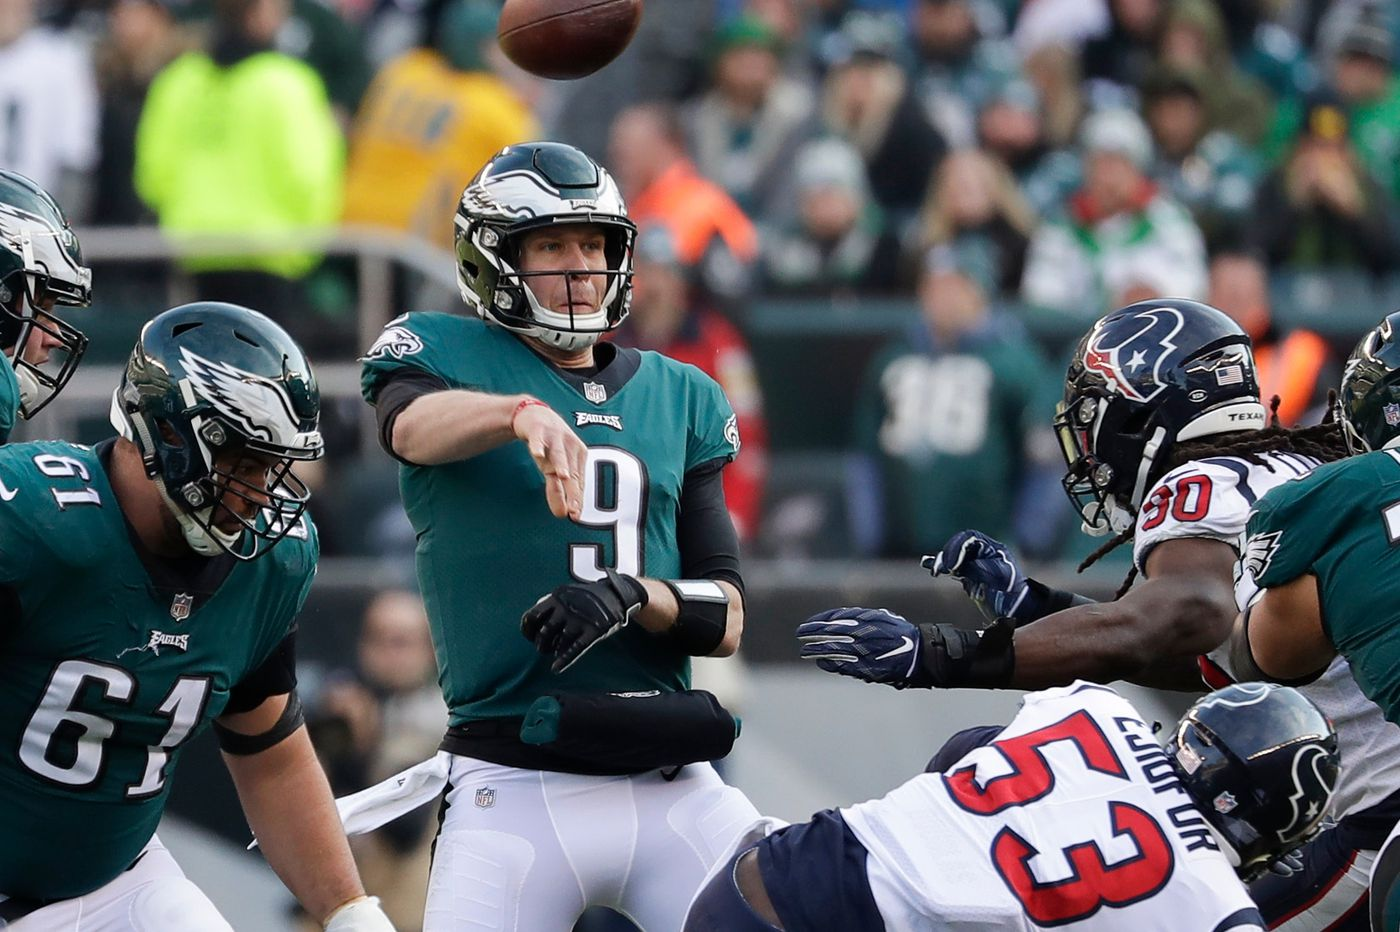 NFL free agency tracker: Nick Foles traded to Chicago Bears one year after signing with Jaguars